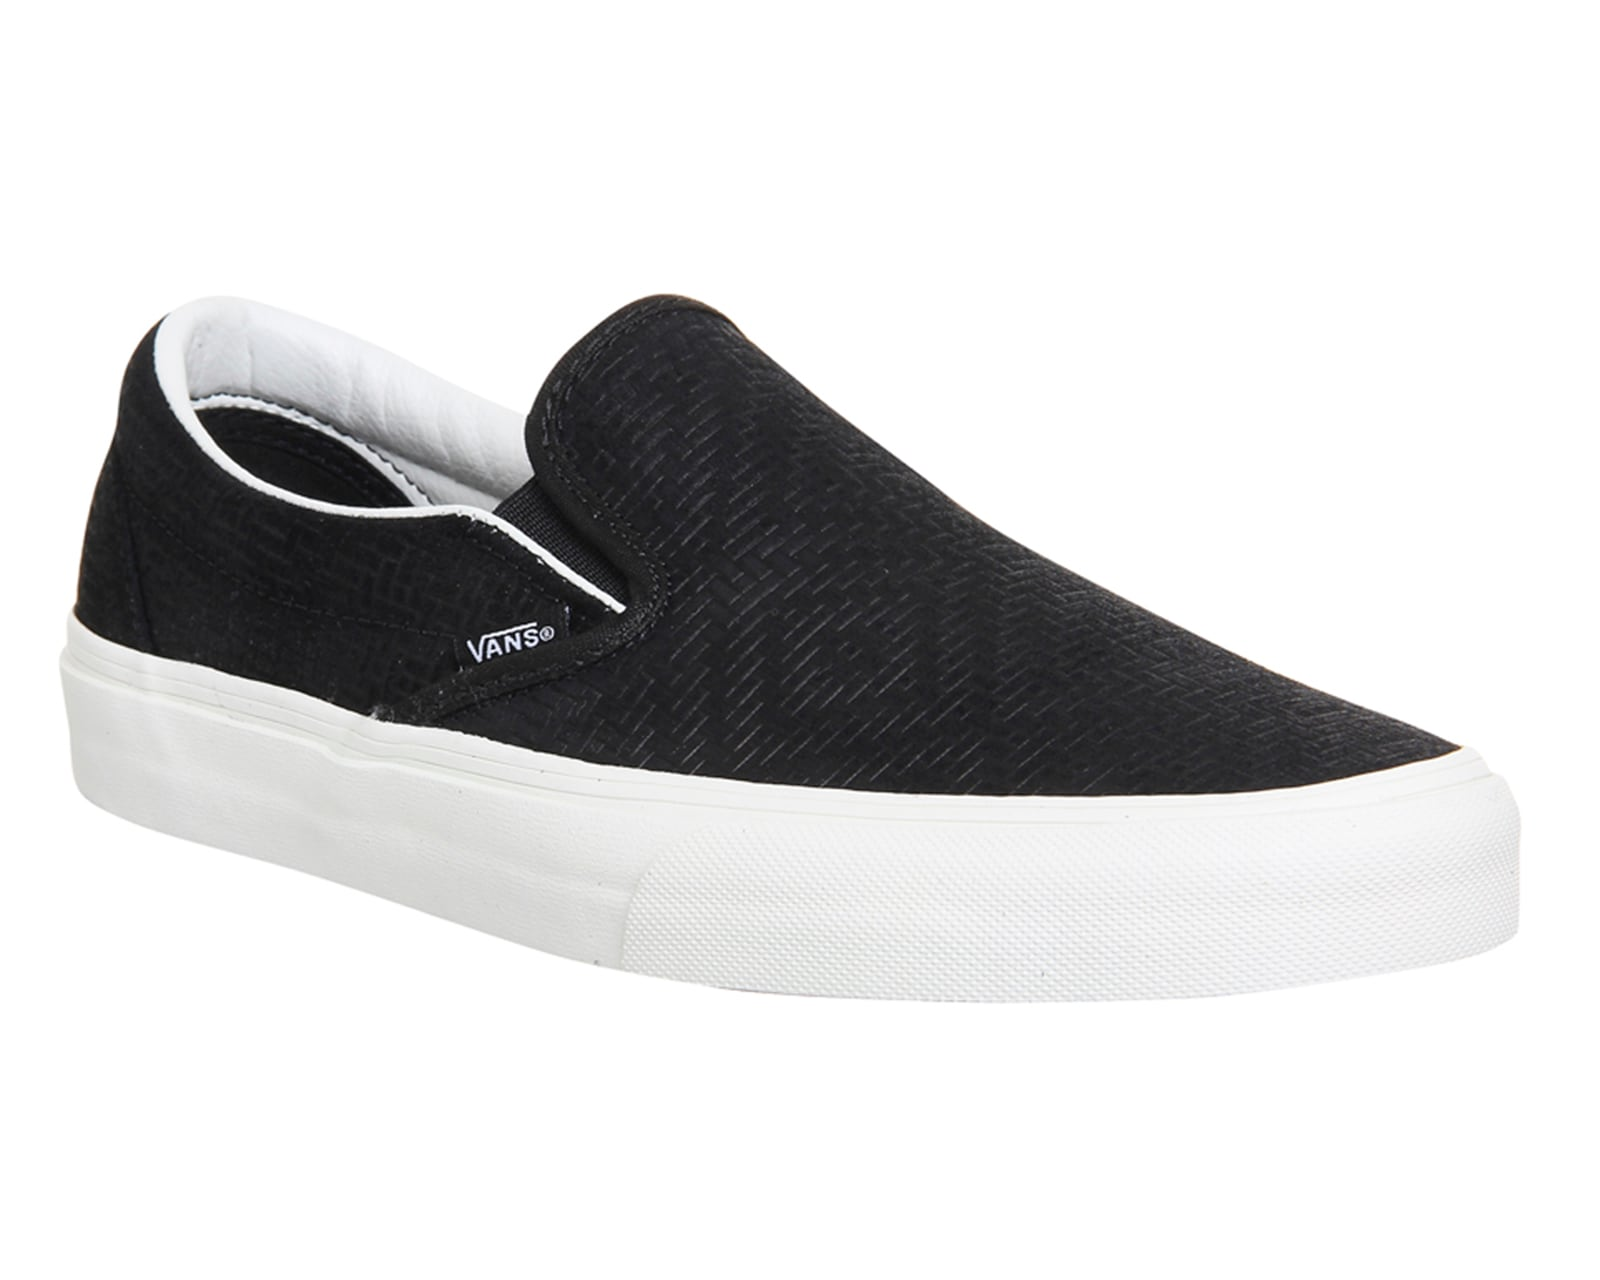 03cfa6f4d Buy tenis vans slip on   OFF58% Discounts